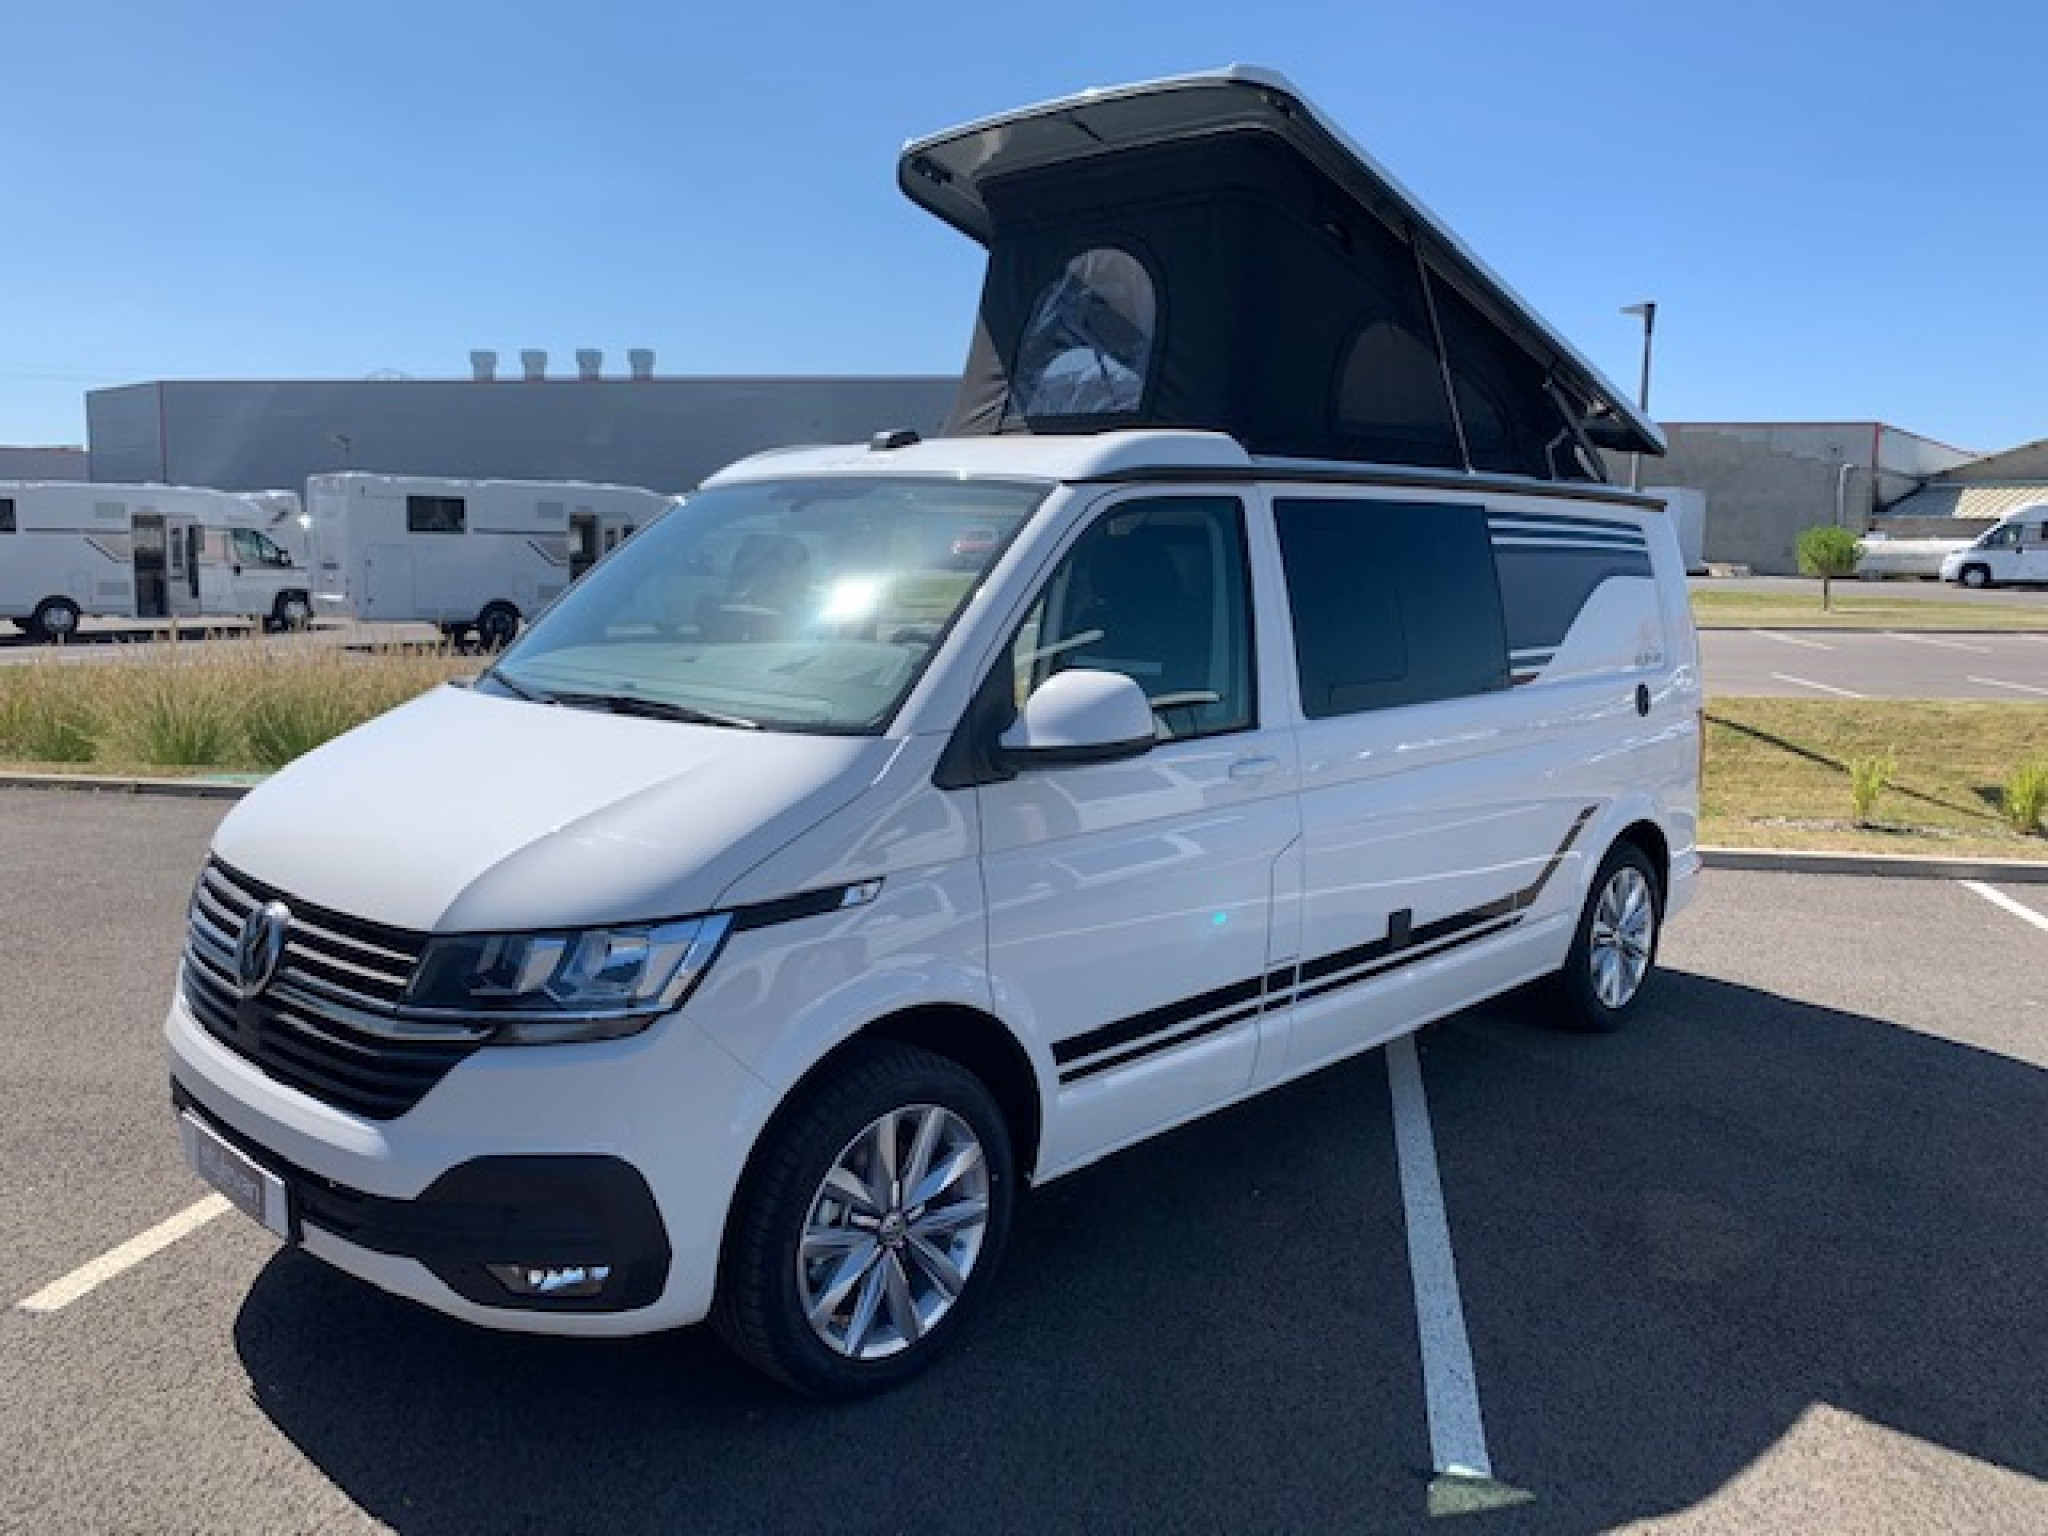 Camping-car STYLEVAN MELBOURNE